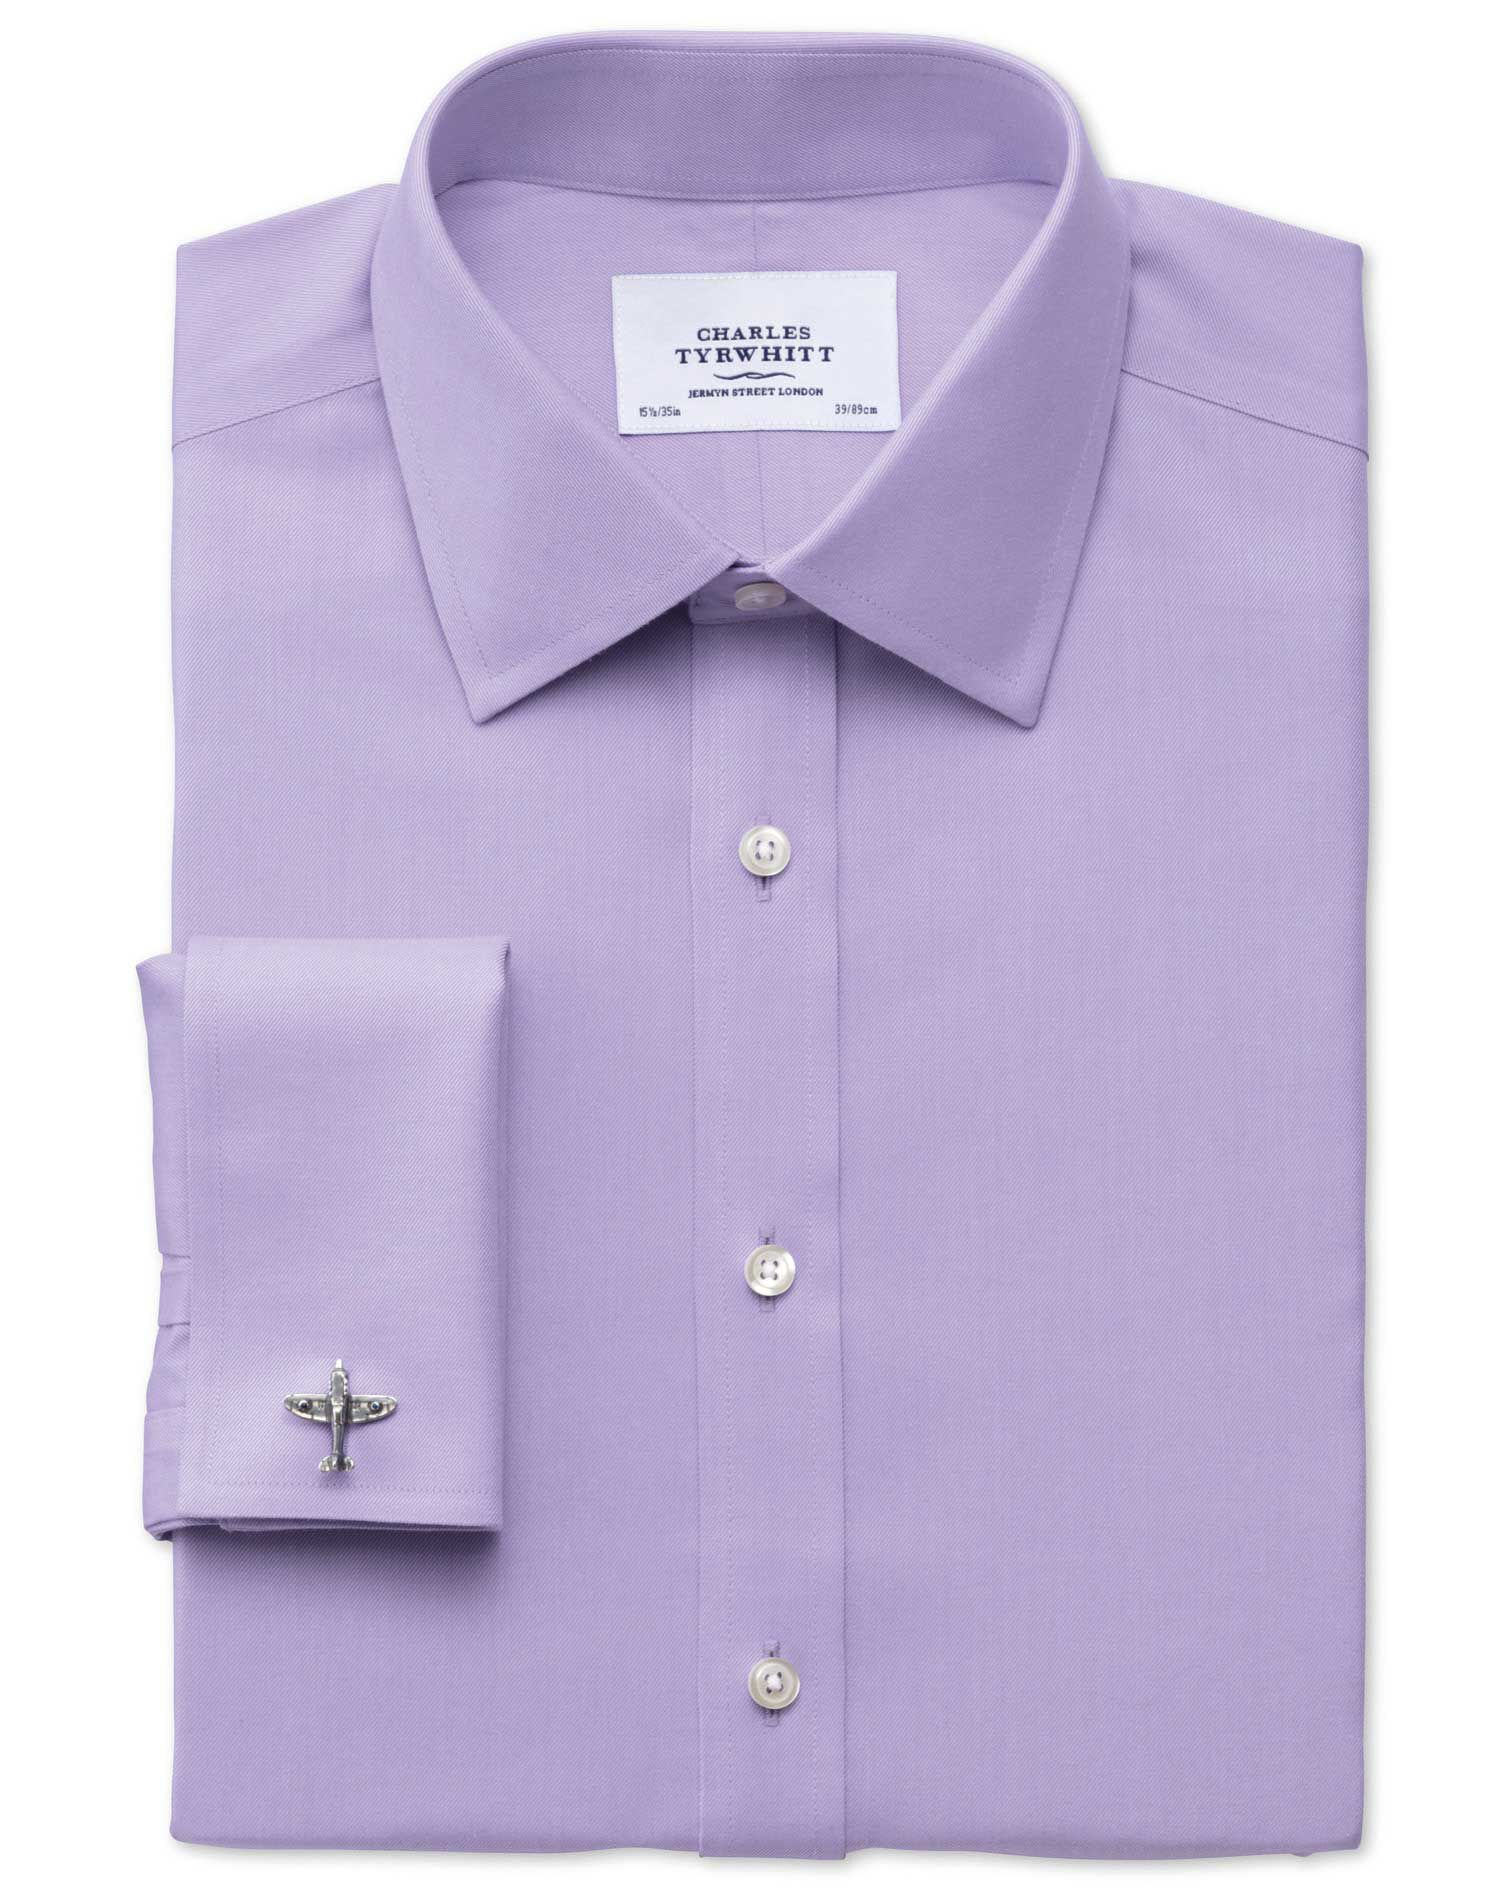 Extra Slim Fit Non-Iron Twill Lilac Cotton Formal Shirt Single Cuff Size 14.5/33 by Charles Tyrwhitt